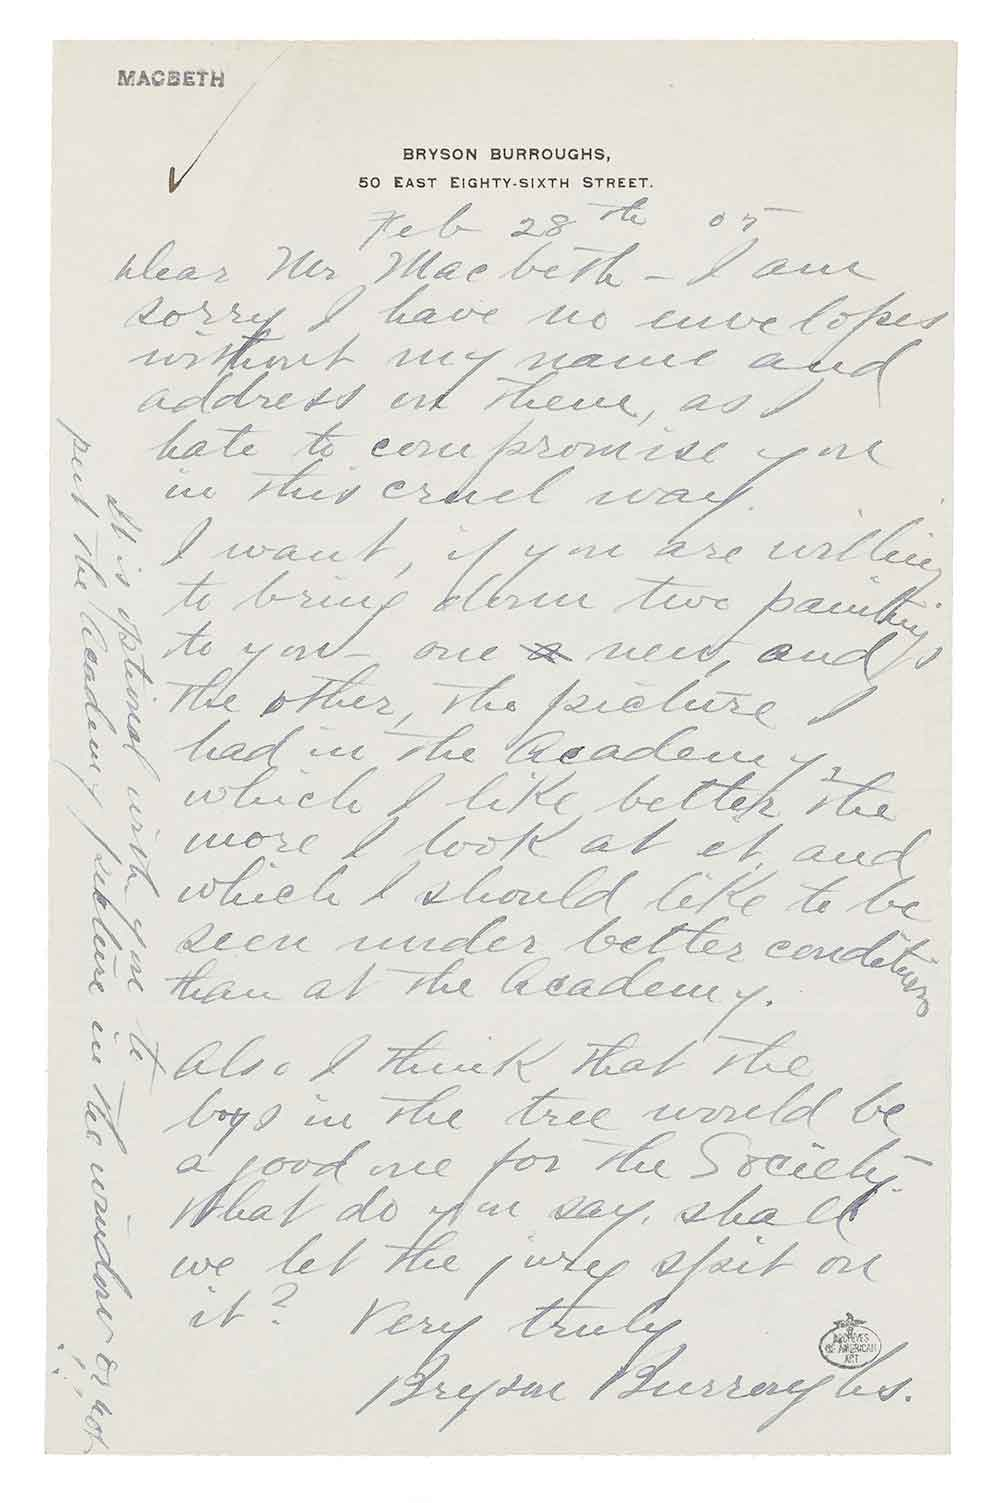 Letter received by William Macbeth from Bryson Burroughs